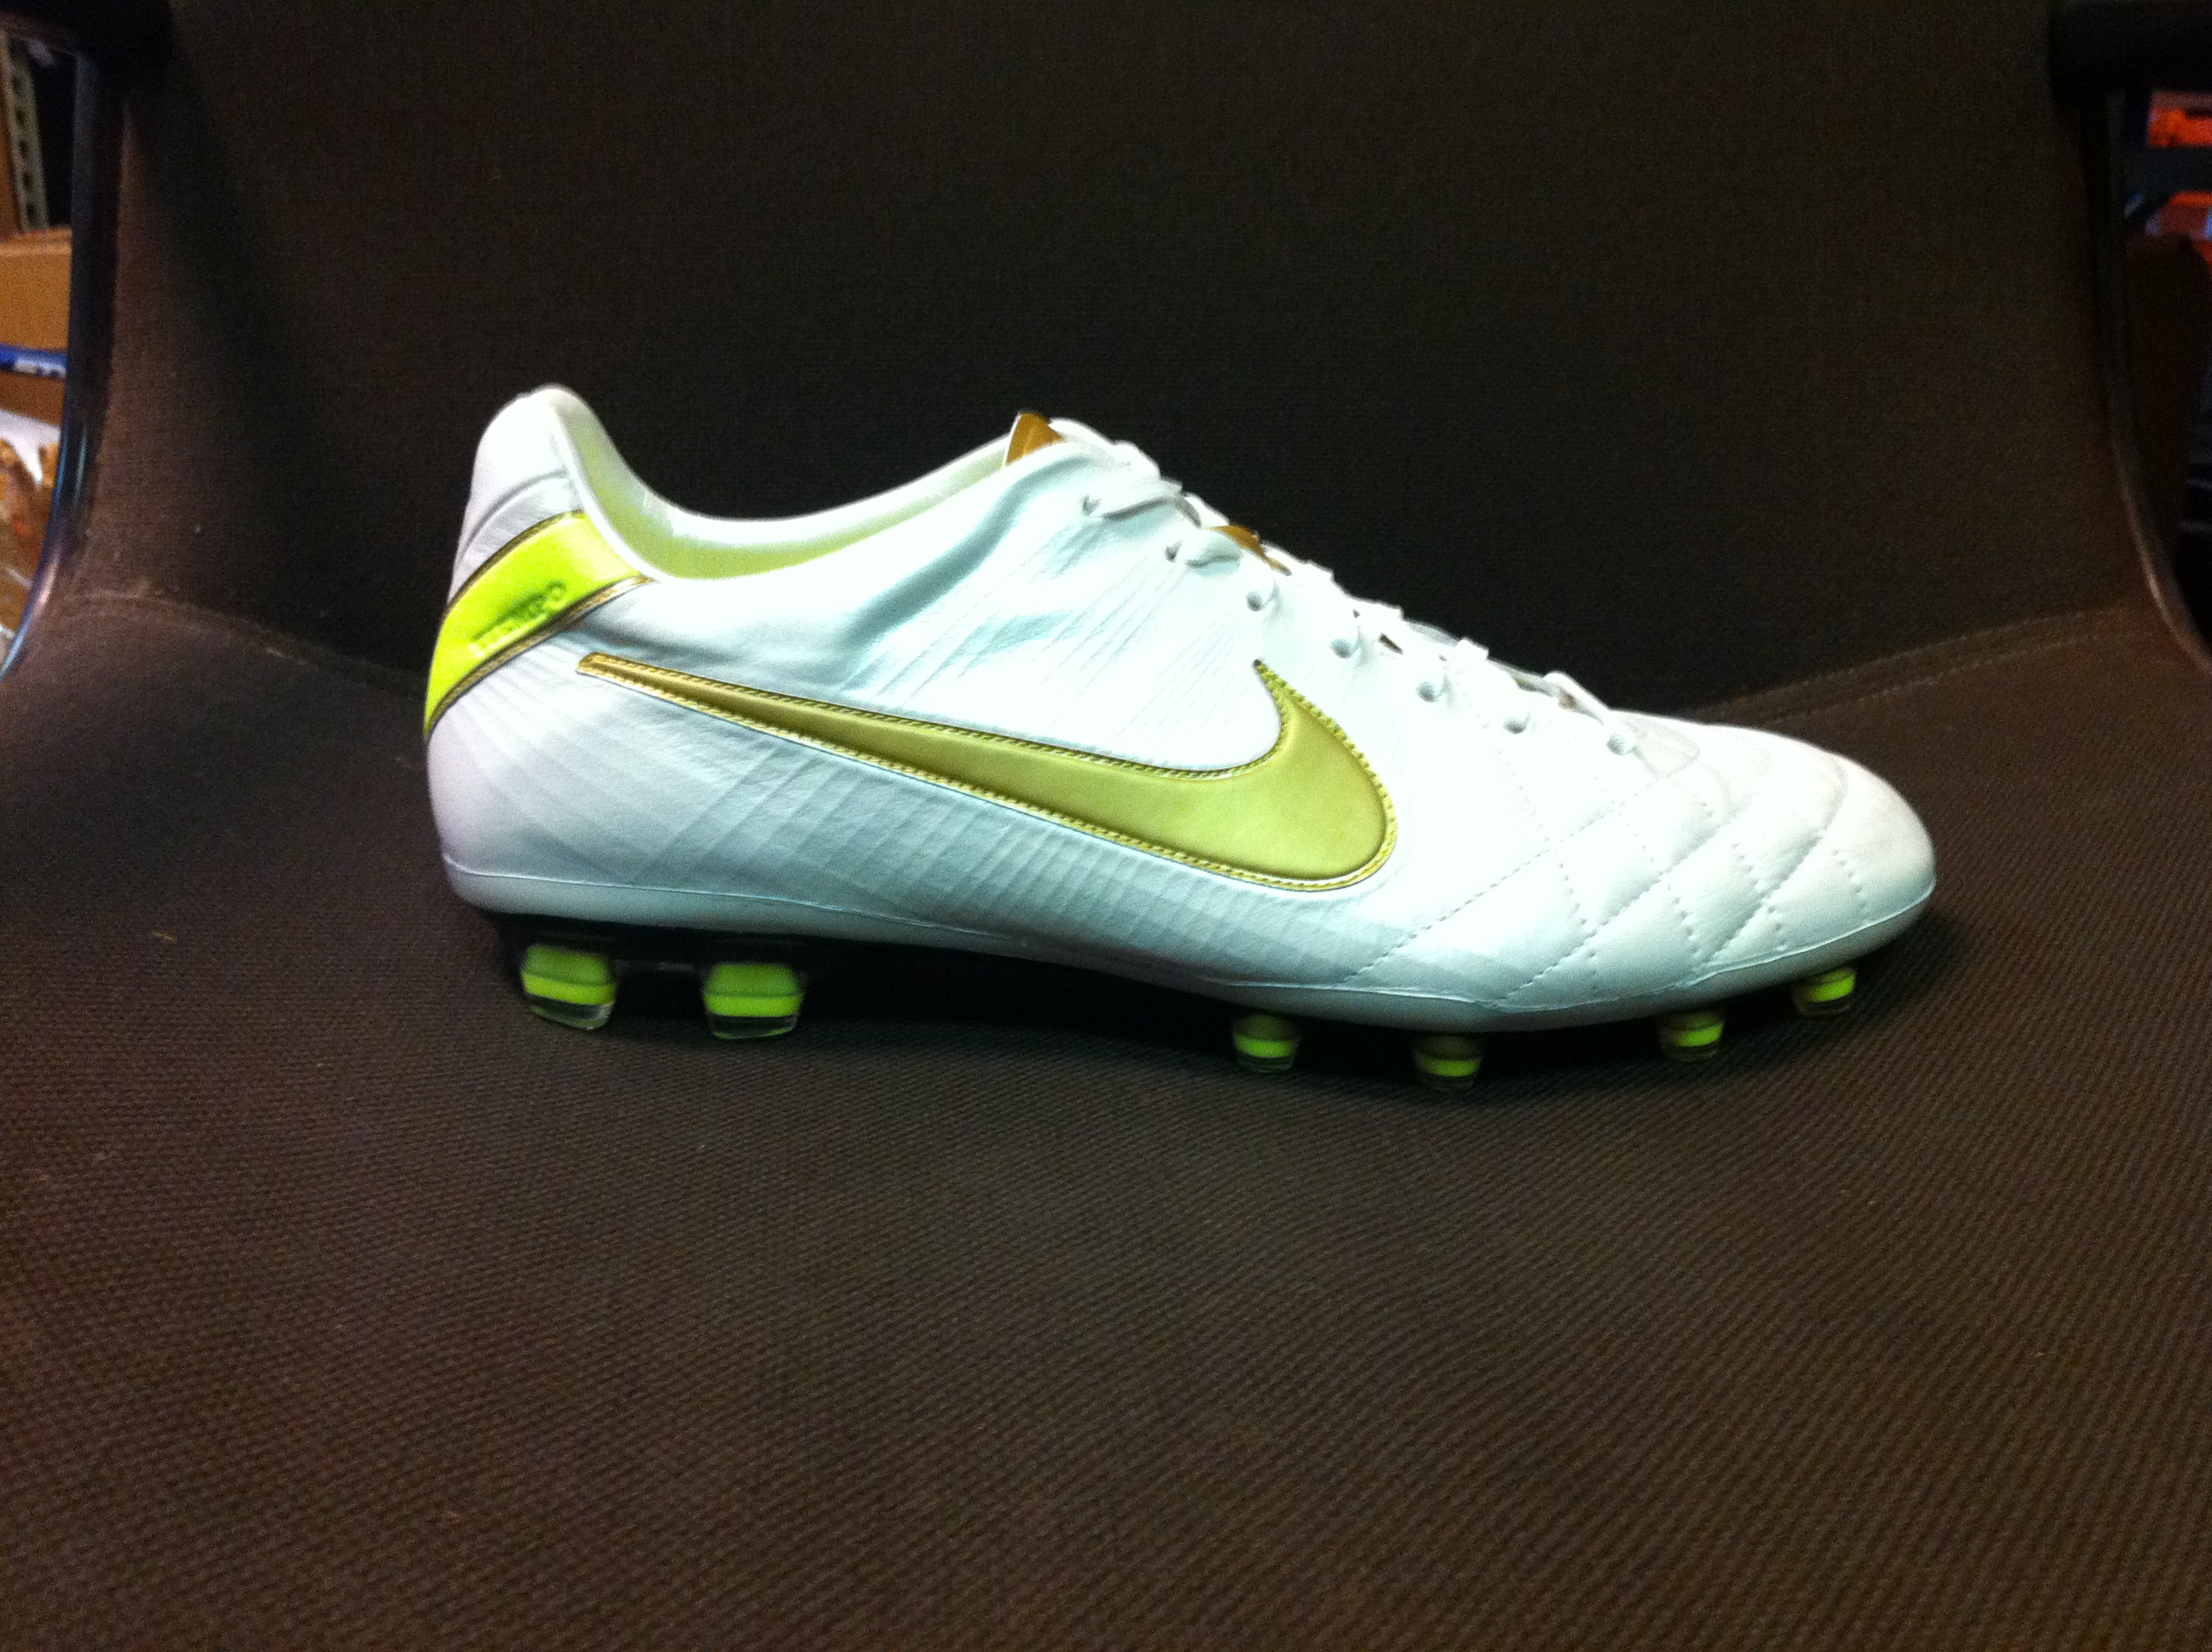 Nike Tiempo IV Elite White Gold Volt colorway 9942ade85